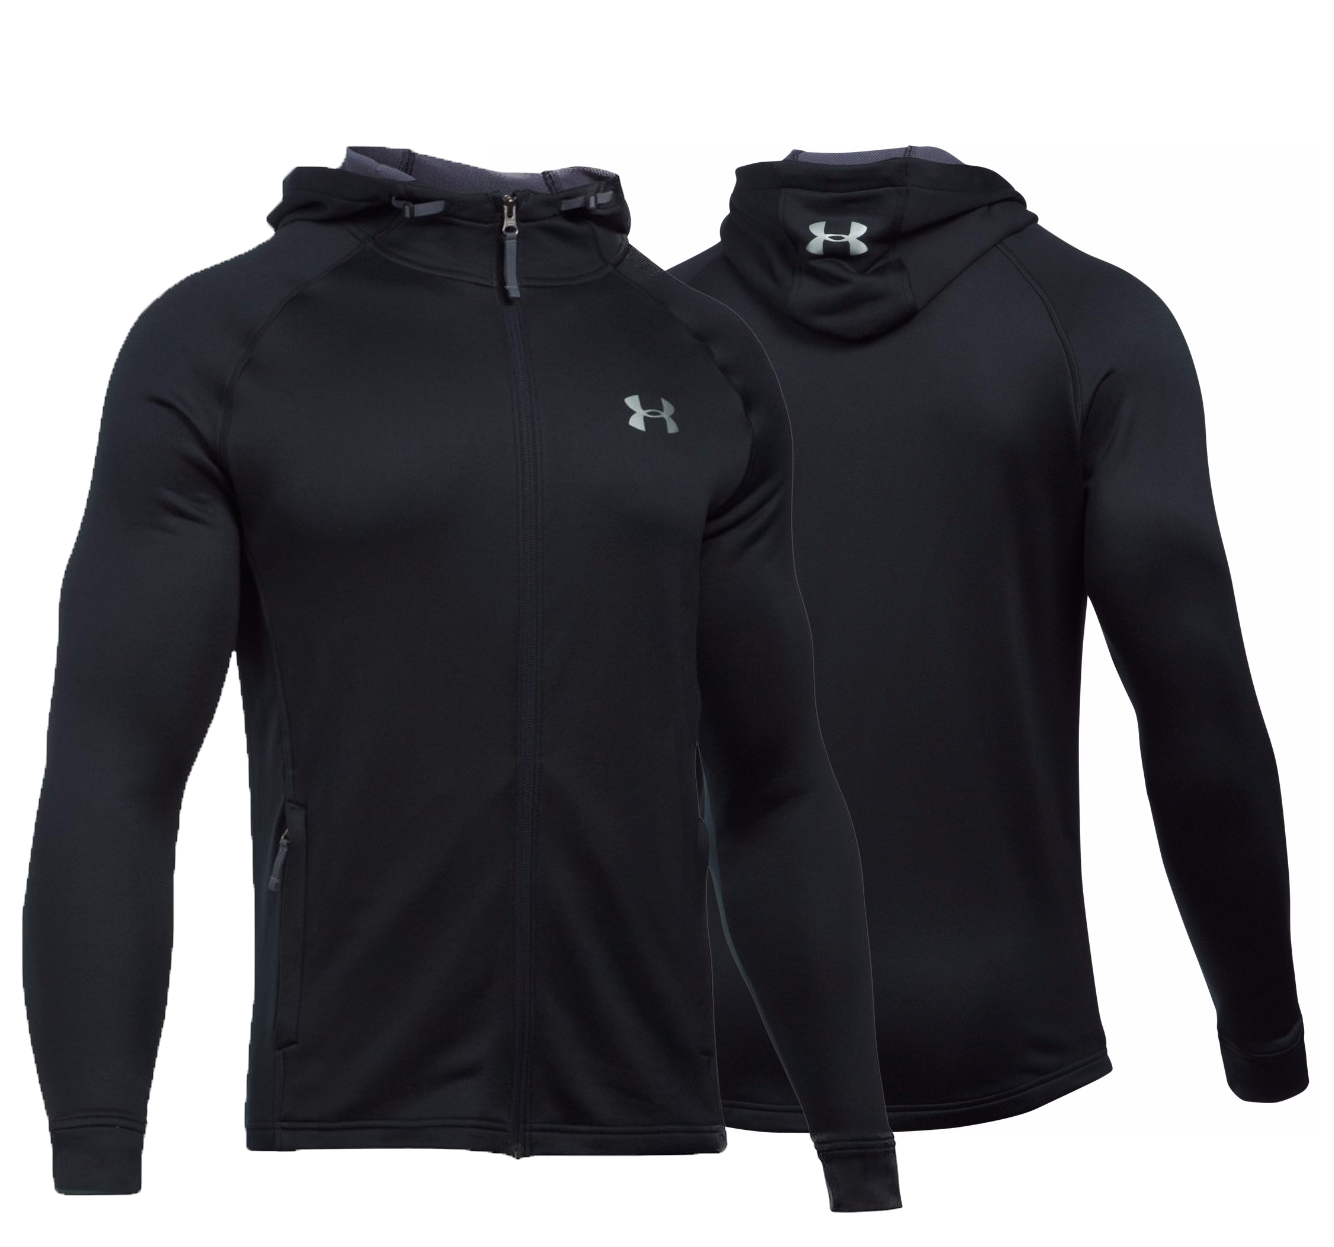 under armour sweatshirt. under-armour-1289698-men-039-s-tech-terry- under armour sweatshirt